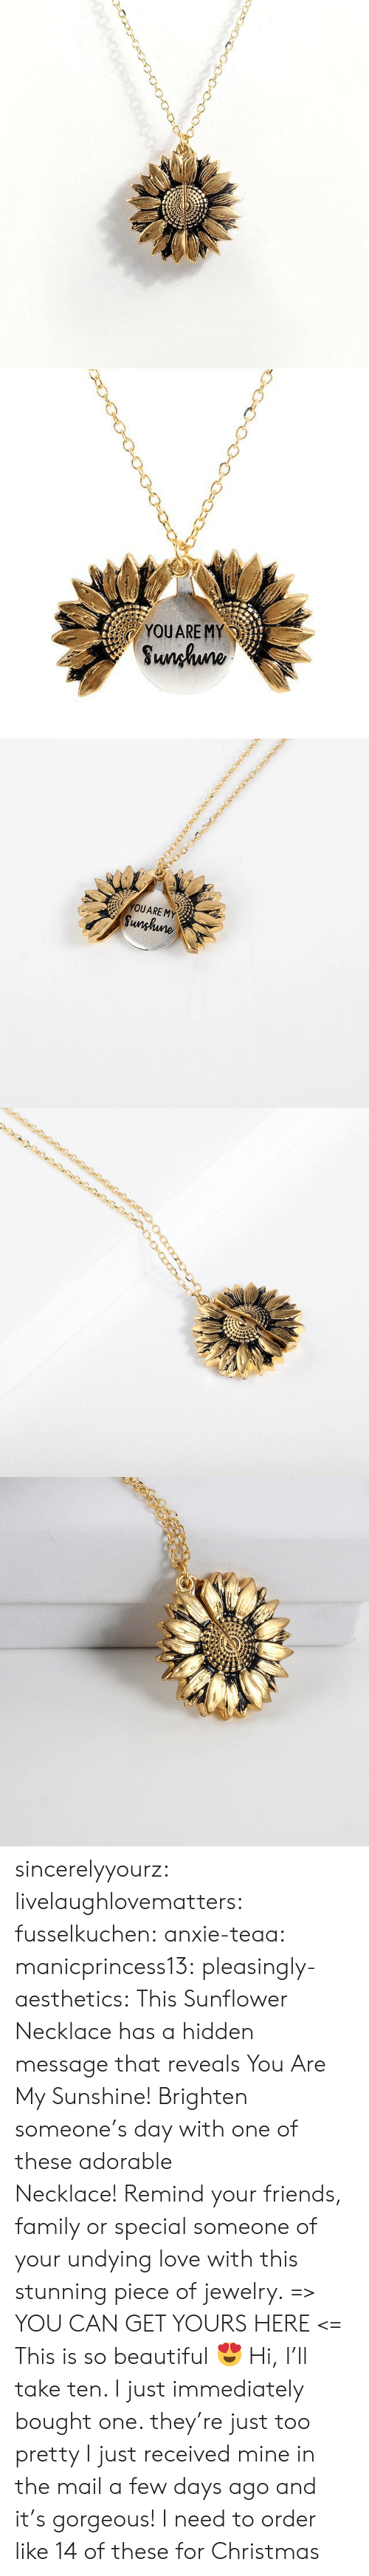 sunflower: YOUARE MY  Sunhuno   YOUARE MY  Sunghune sincerelyyourz: livelaughlovematters:  fusselkuchen:  anxie-teaa:   manicprincess13:   pleasingly-aesthetics:  This Sunflower Necklace has a hidden message that reveals You Are My Sunshine! Brighten someone's day with one of these adorable Necklace!Remind your friends, family or special someone of your undying love with this stunning piece of jewelry. => YOU CAN GET YOURS HERE <=   This is so beautiful 😍    Hi, I'll take ten.    I just immediately bought one. they're just too pretty   I just received mine in the mail a few days ago and it's gorgeous!   I need to order like 14 of these for Christmas